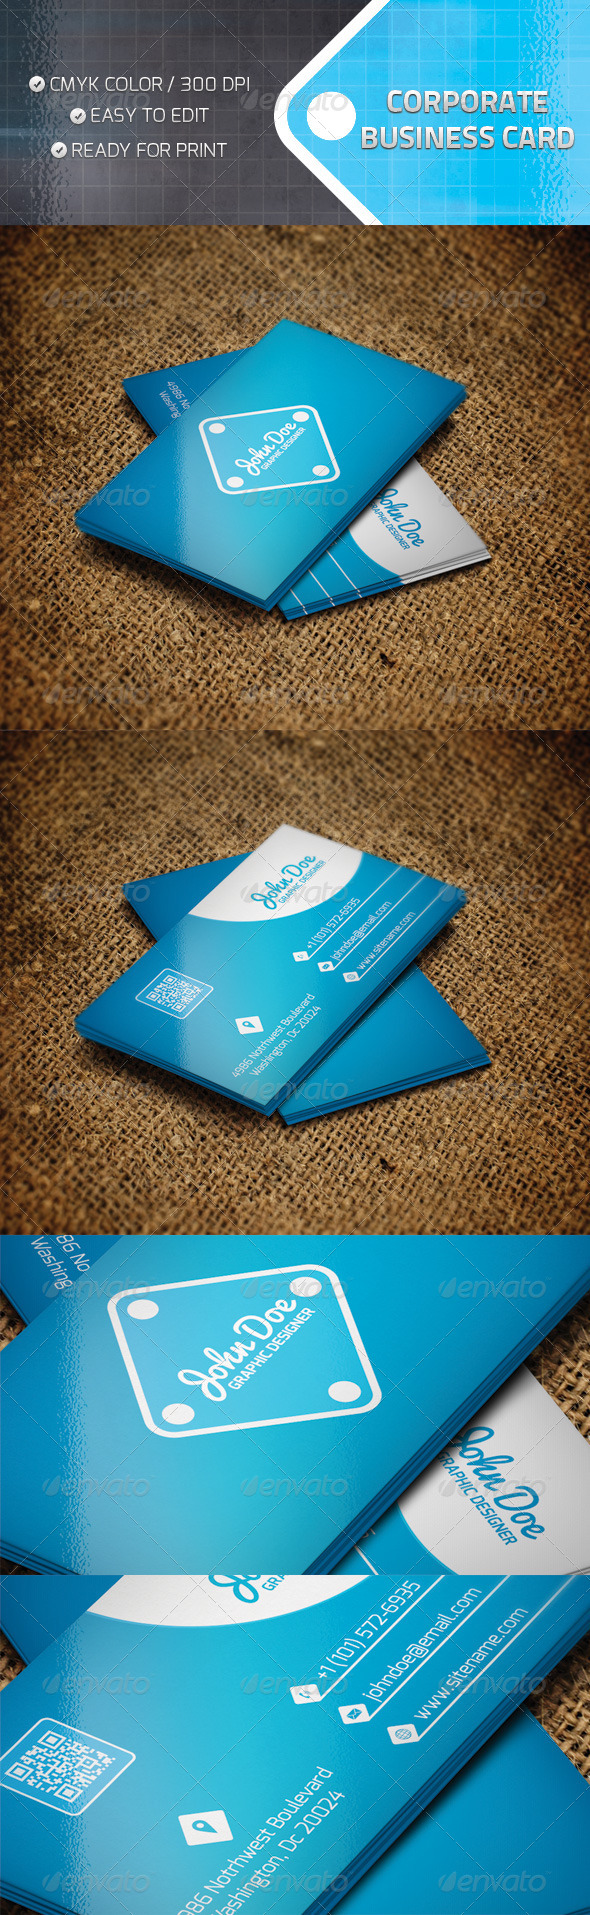 GraphicRiver Corporate Business Card 4718244